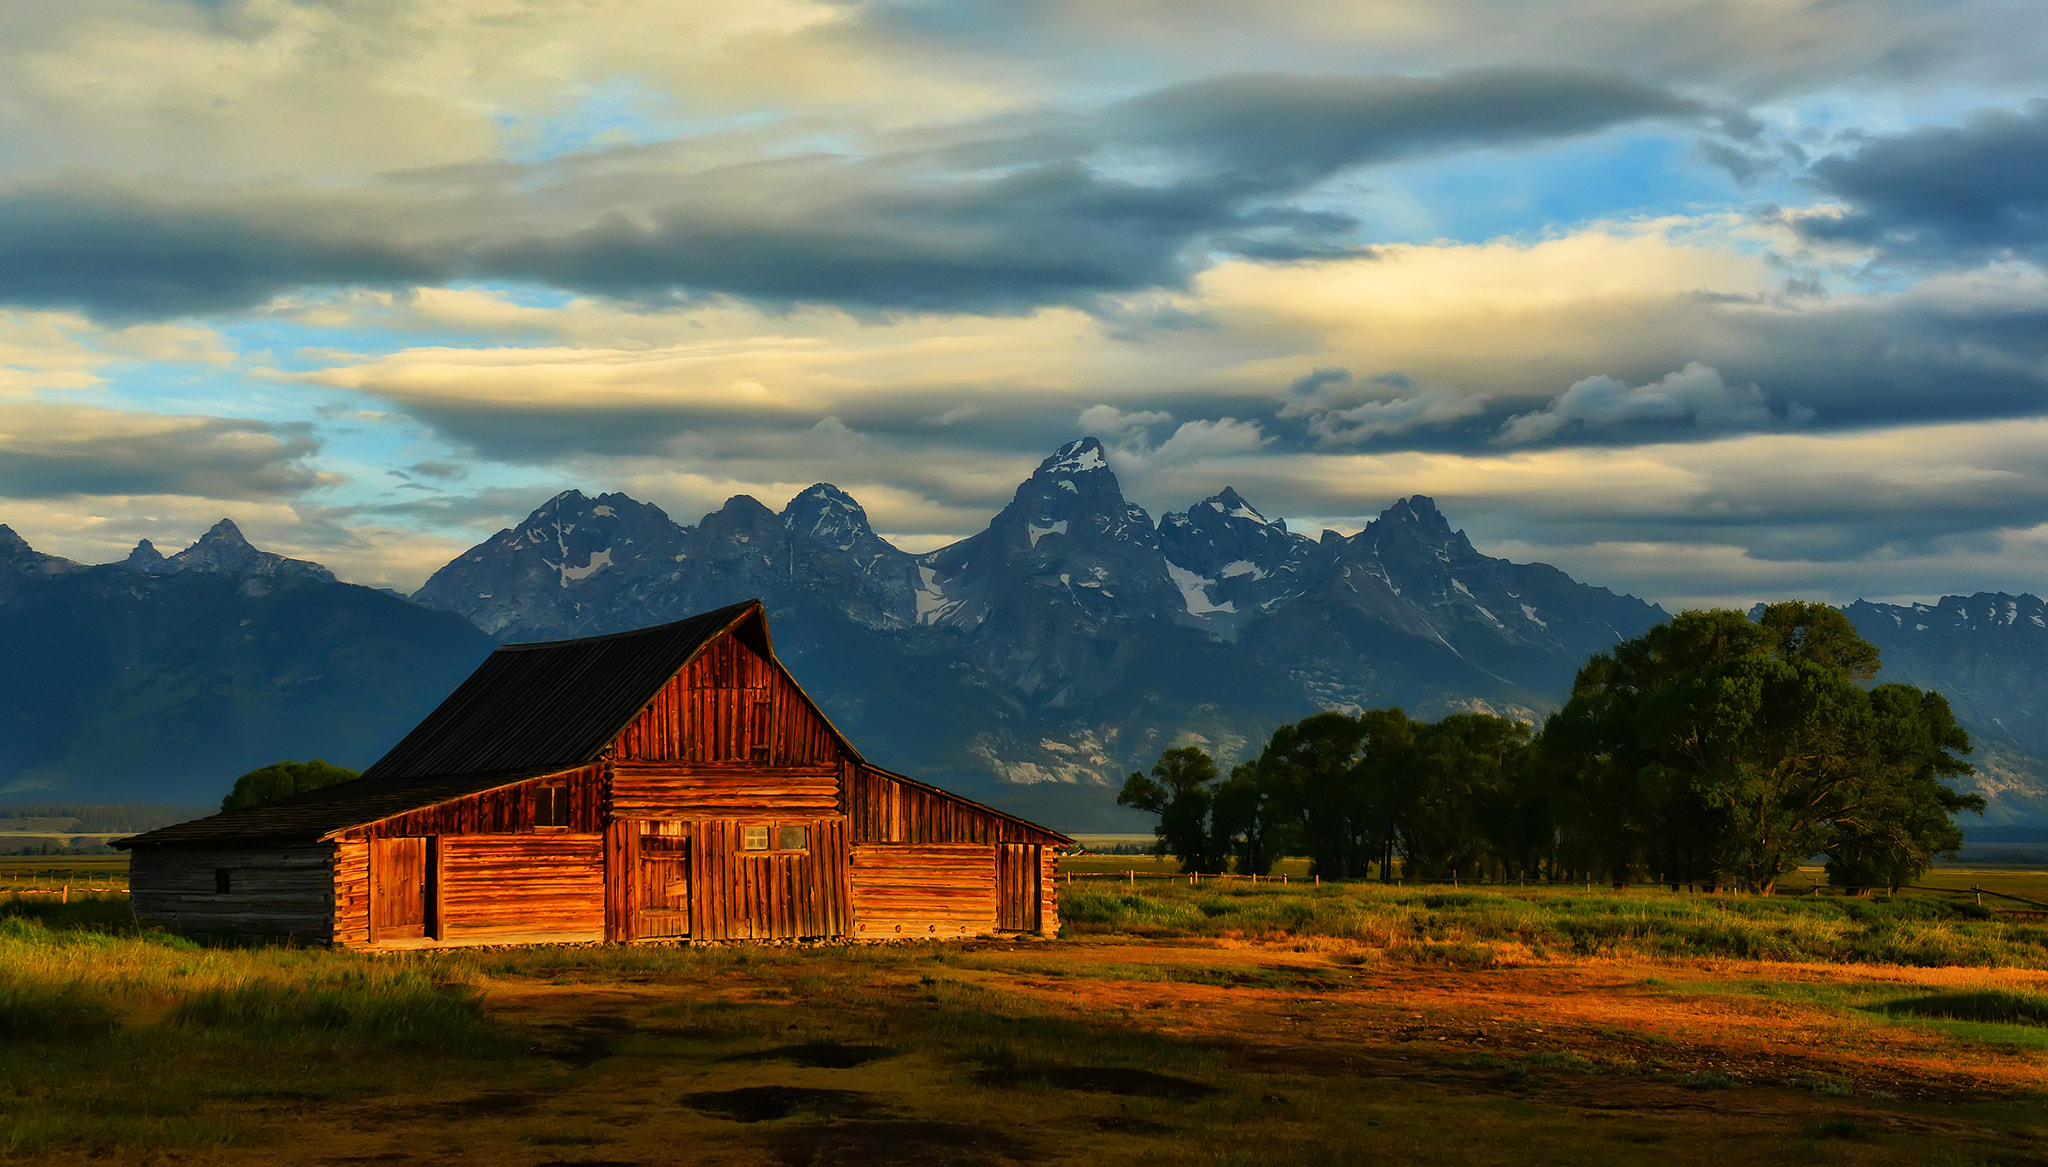 Photograph Bolt of Light at the Barn by Jeff Clow on 500px